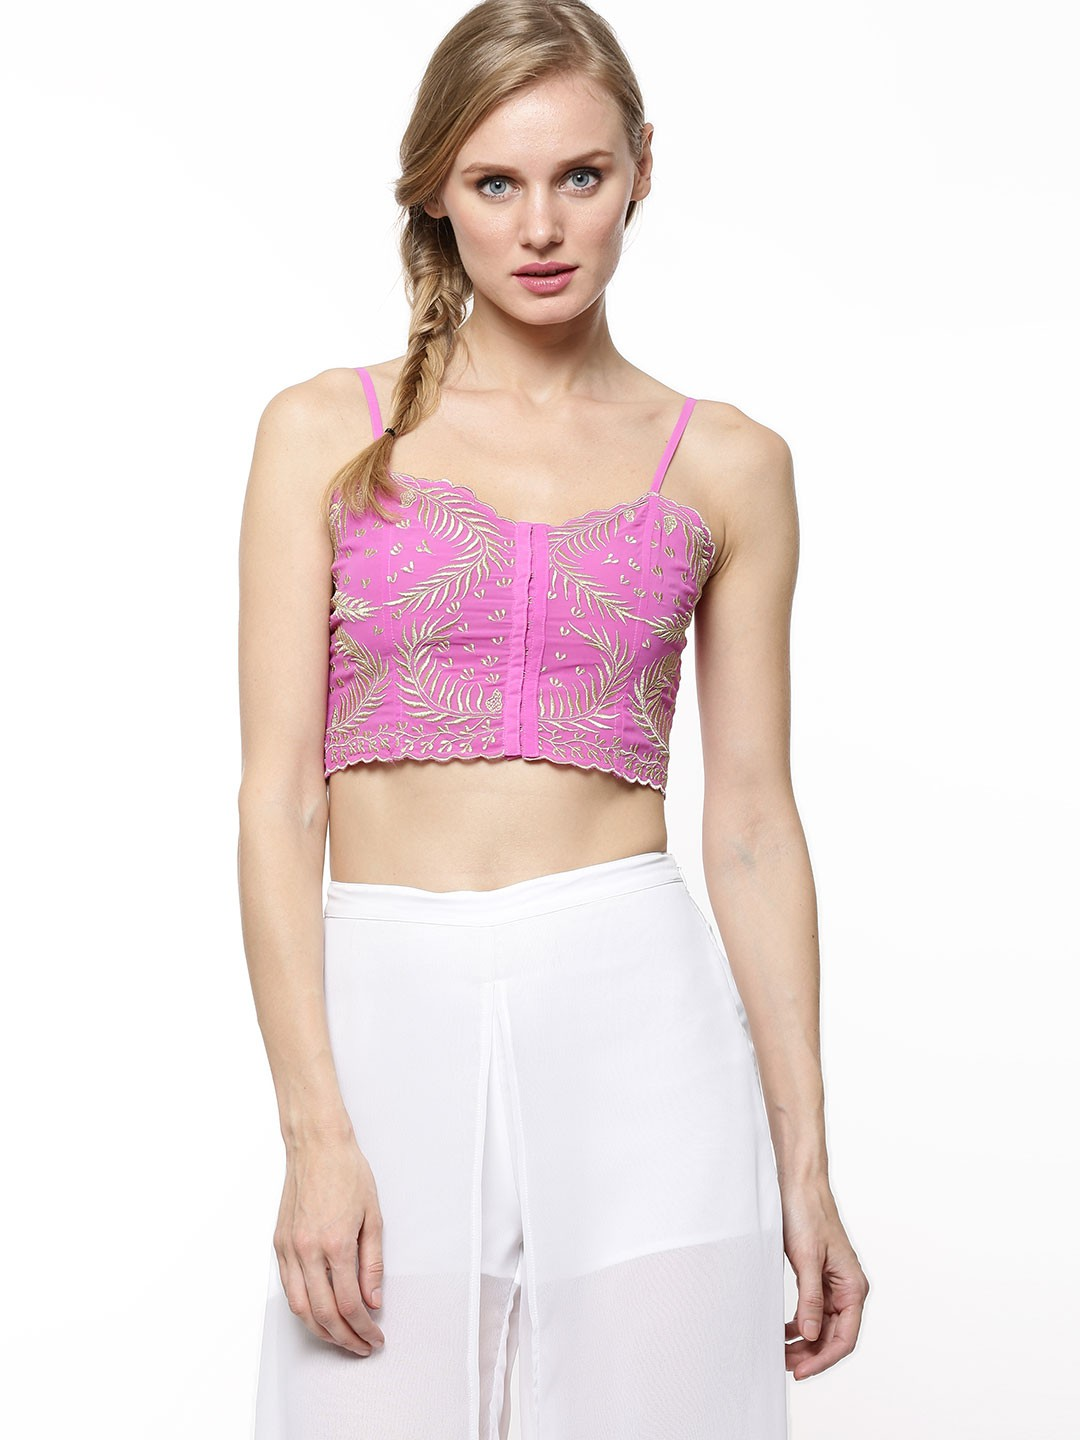 Get ready for party season with this cute embroidered bralet. Featuring chevron embellishment detail at the front, we'd pair it with velvet for seasonal chic. % Polyester. Machine wash.